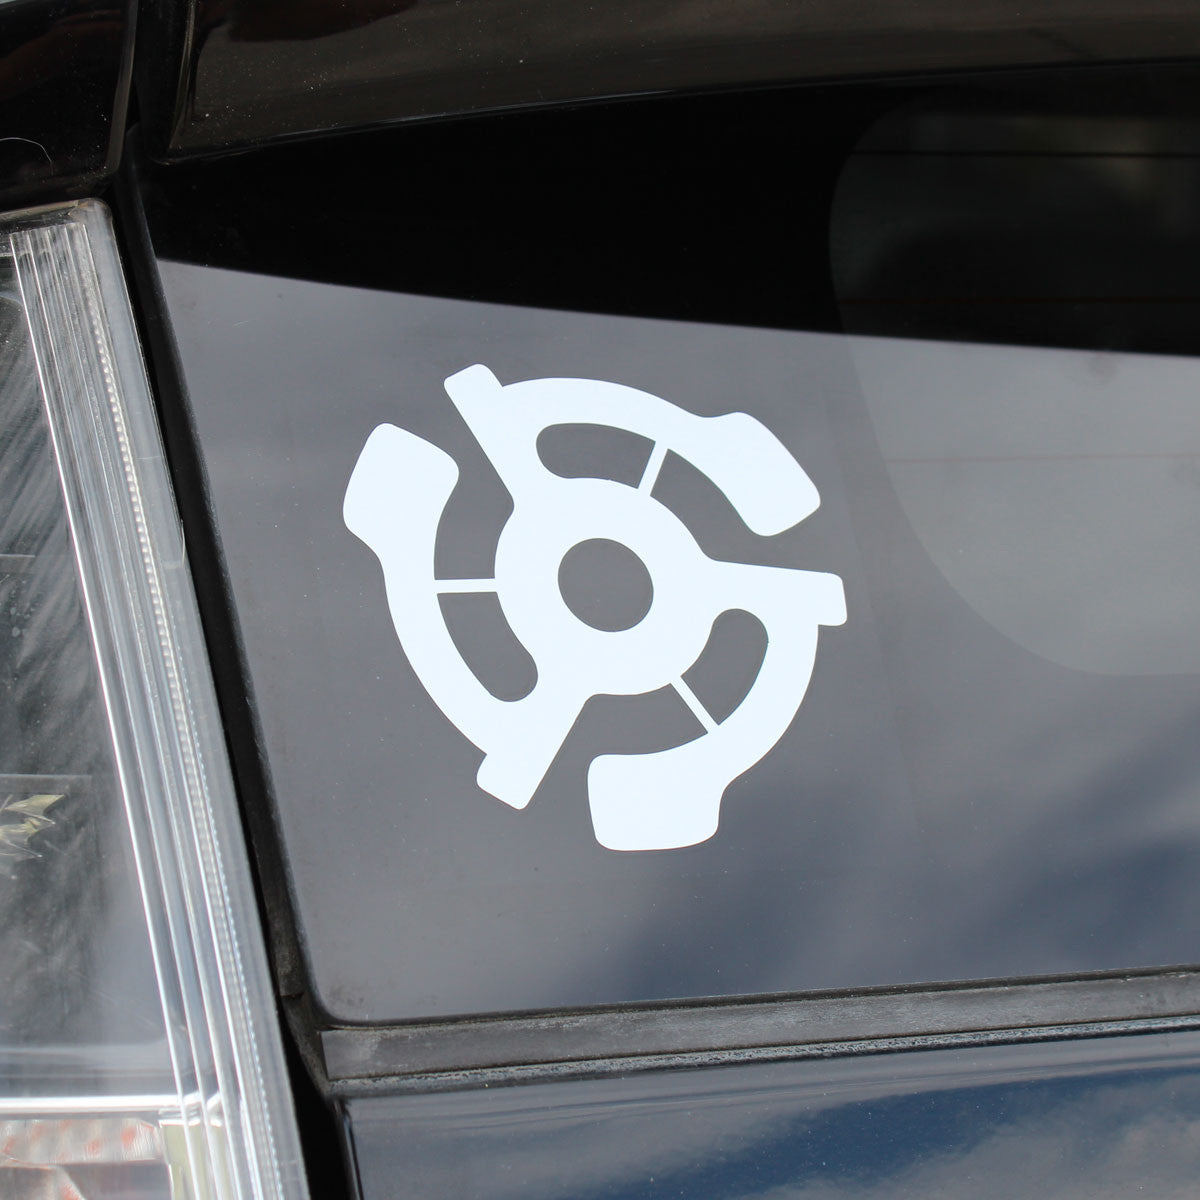 Stereo 45 adapter decal